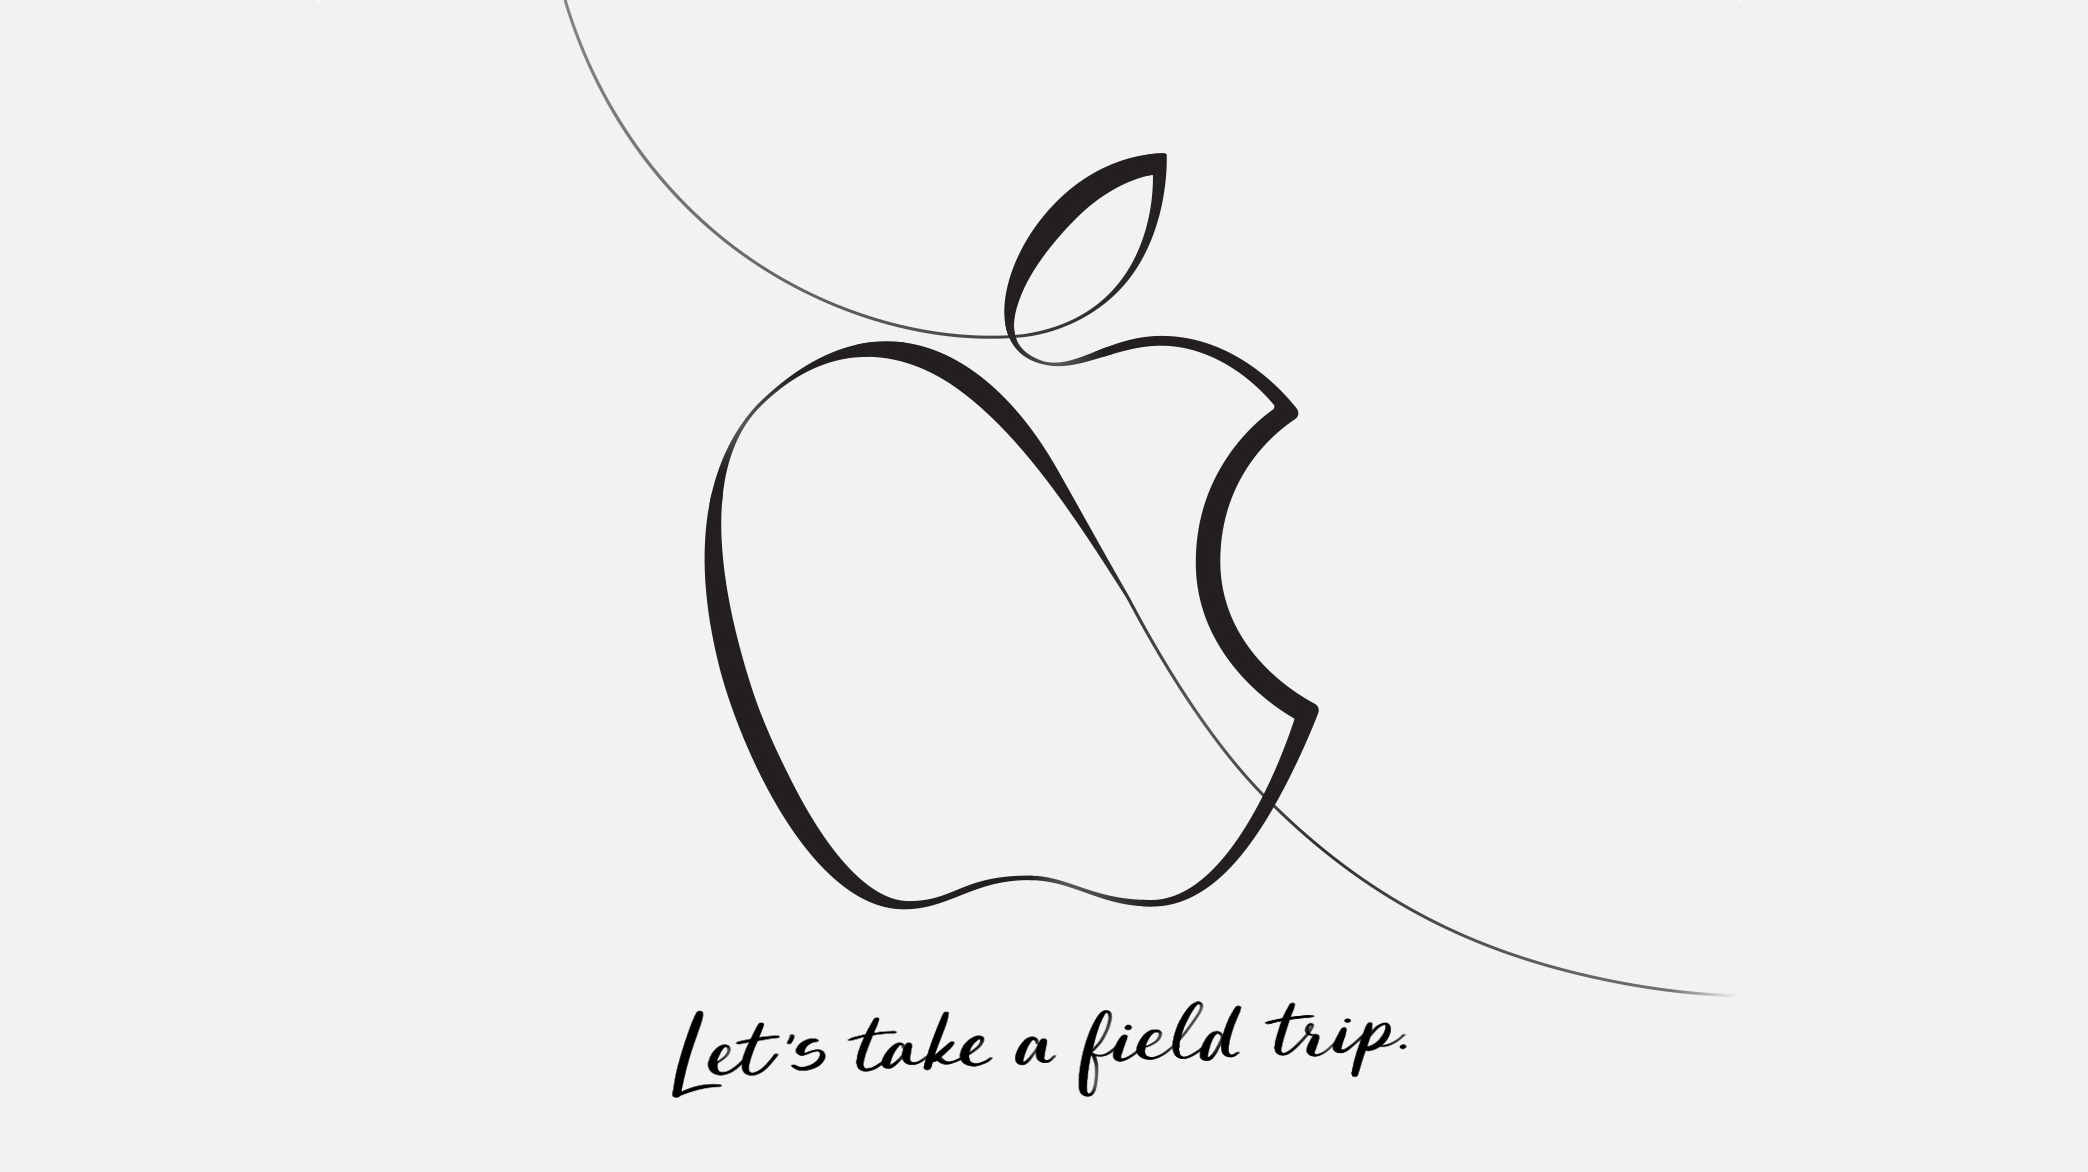 Apple is holding an education-focused event on March 27th